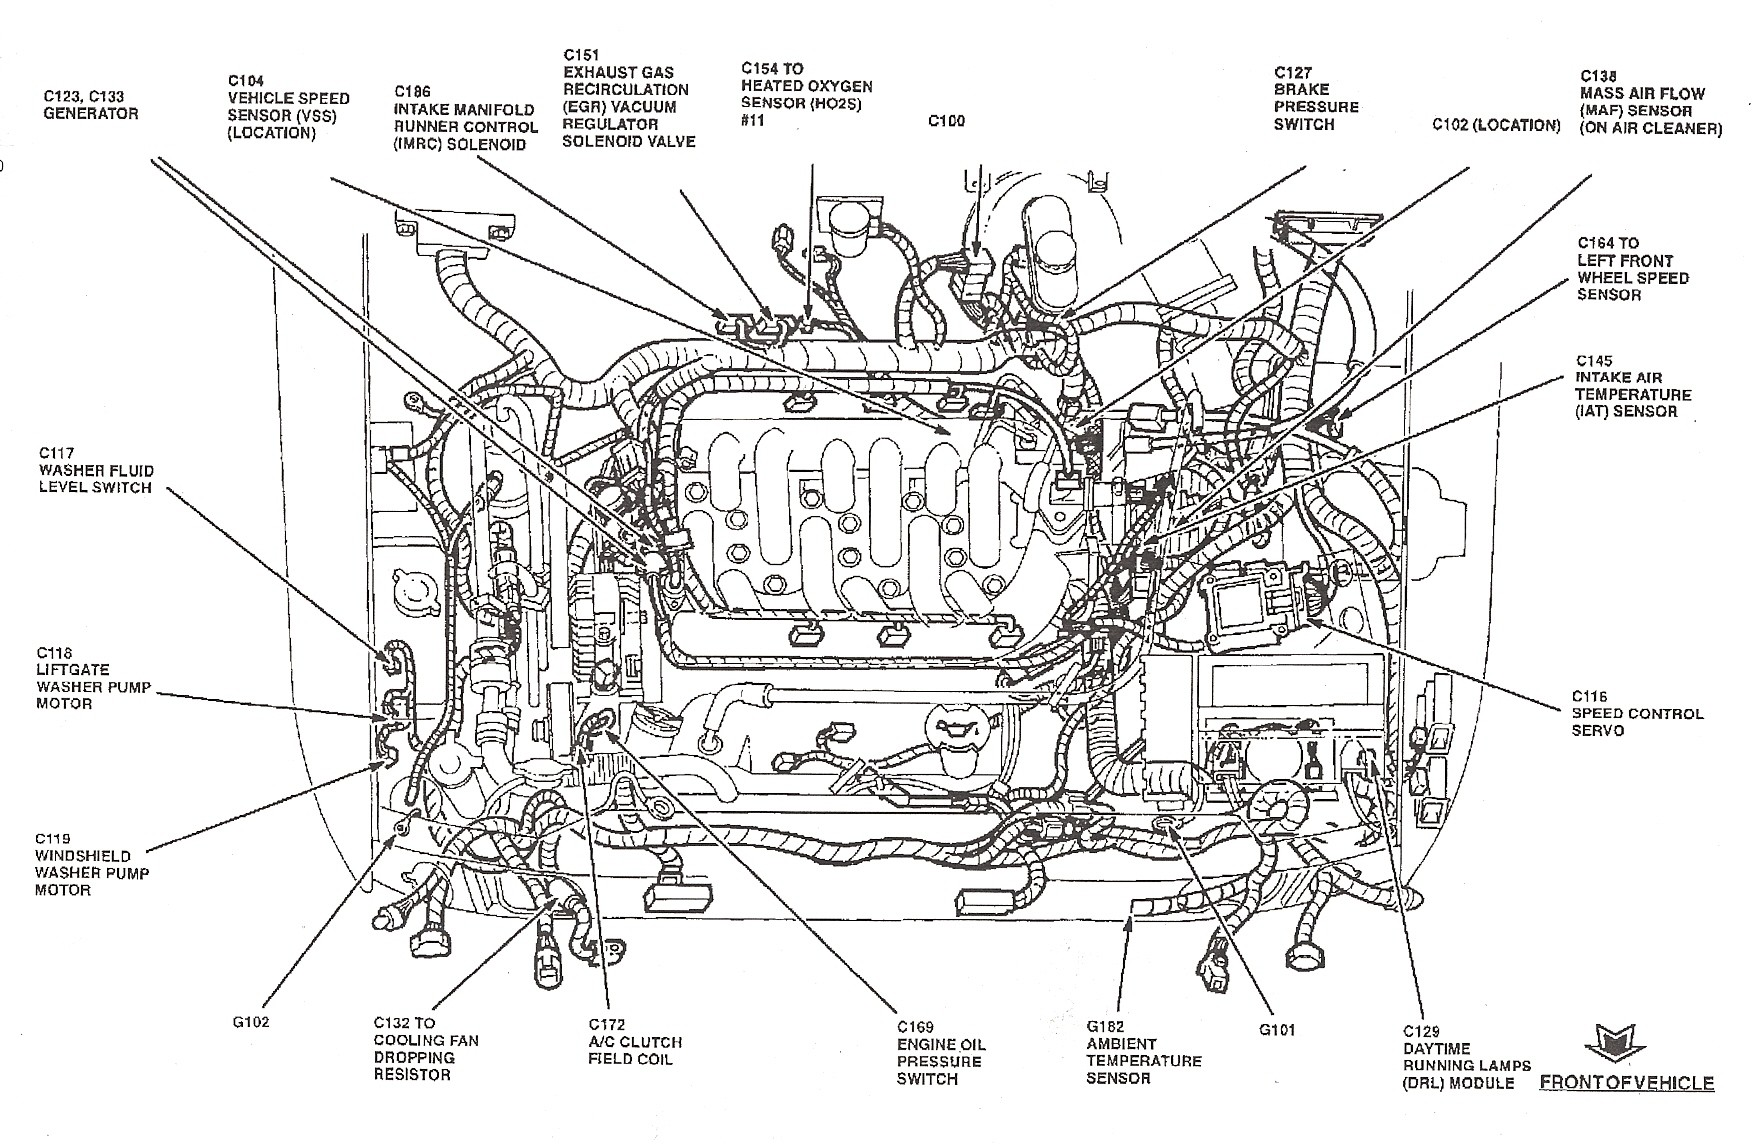 Cooling System Diagram Zetec Engine Diagram Vacuum Wiring Wiring Diagrams Instructions Of Cooling System Diagram